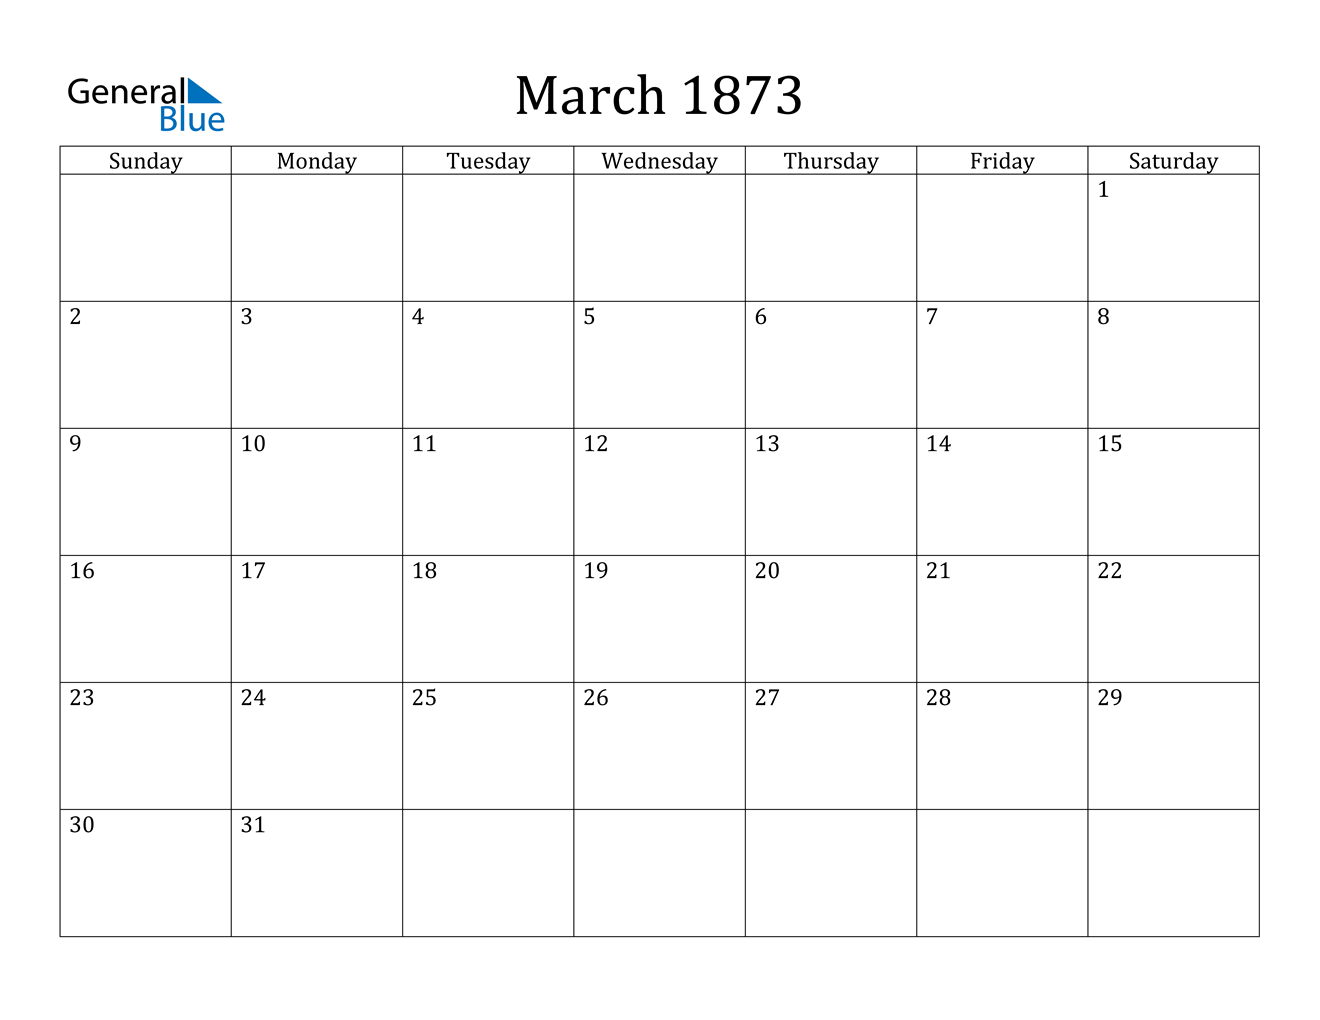 Image of March 1873 Calendar